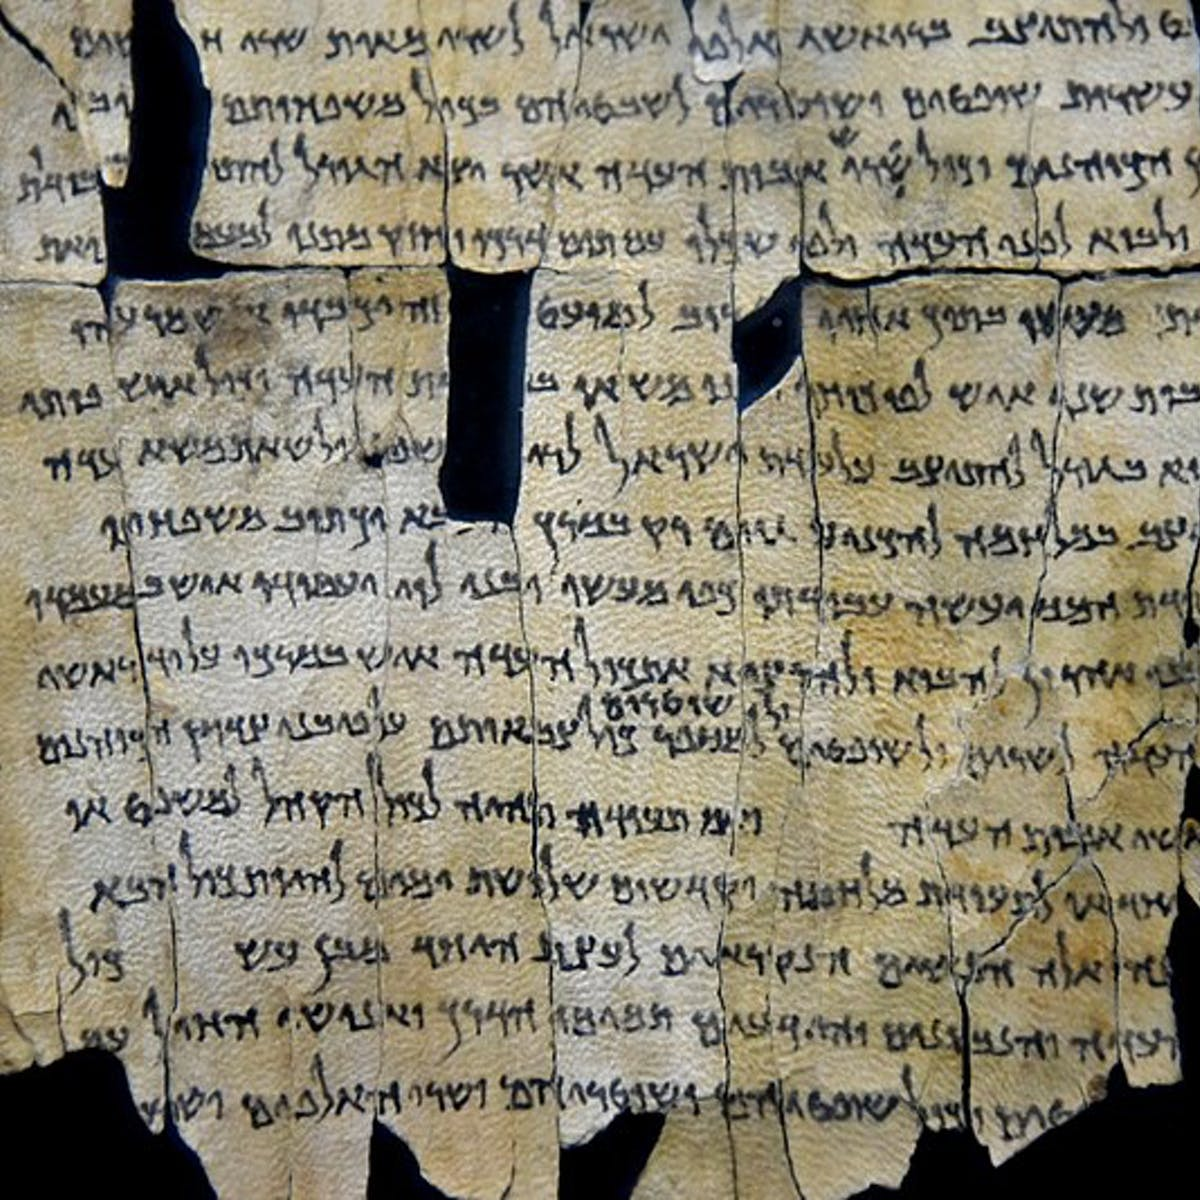 NASA Technology Uncovers Never-Before-Seen Text on Dead Sea Scrolls